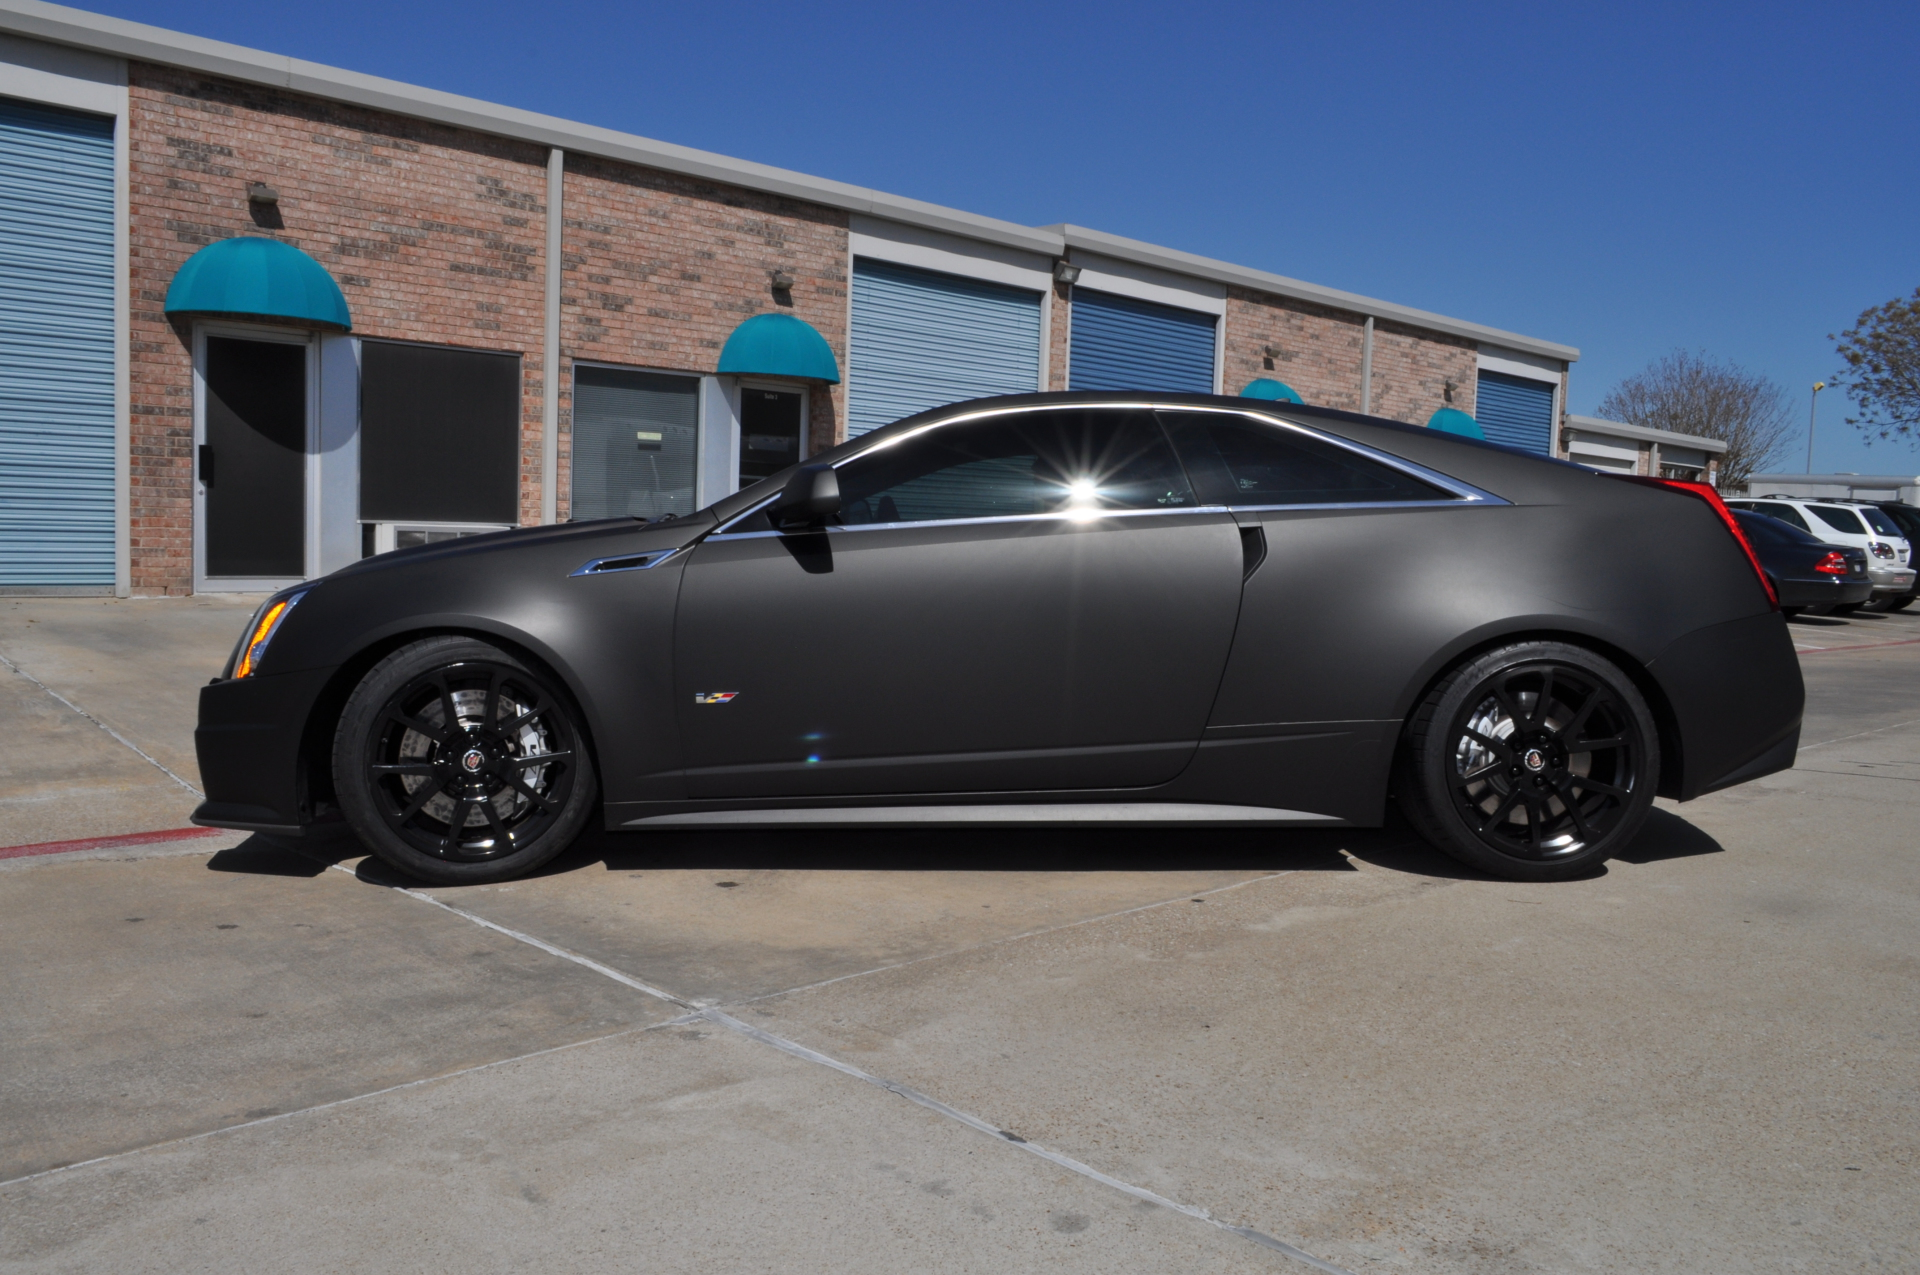 Caddillac car wrap Dallas, Car wraps plano, matte wraps plano, matte wraps denton, matte wraps dfw, matte wraps texas, matte wraps irving, matte wraps